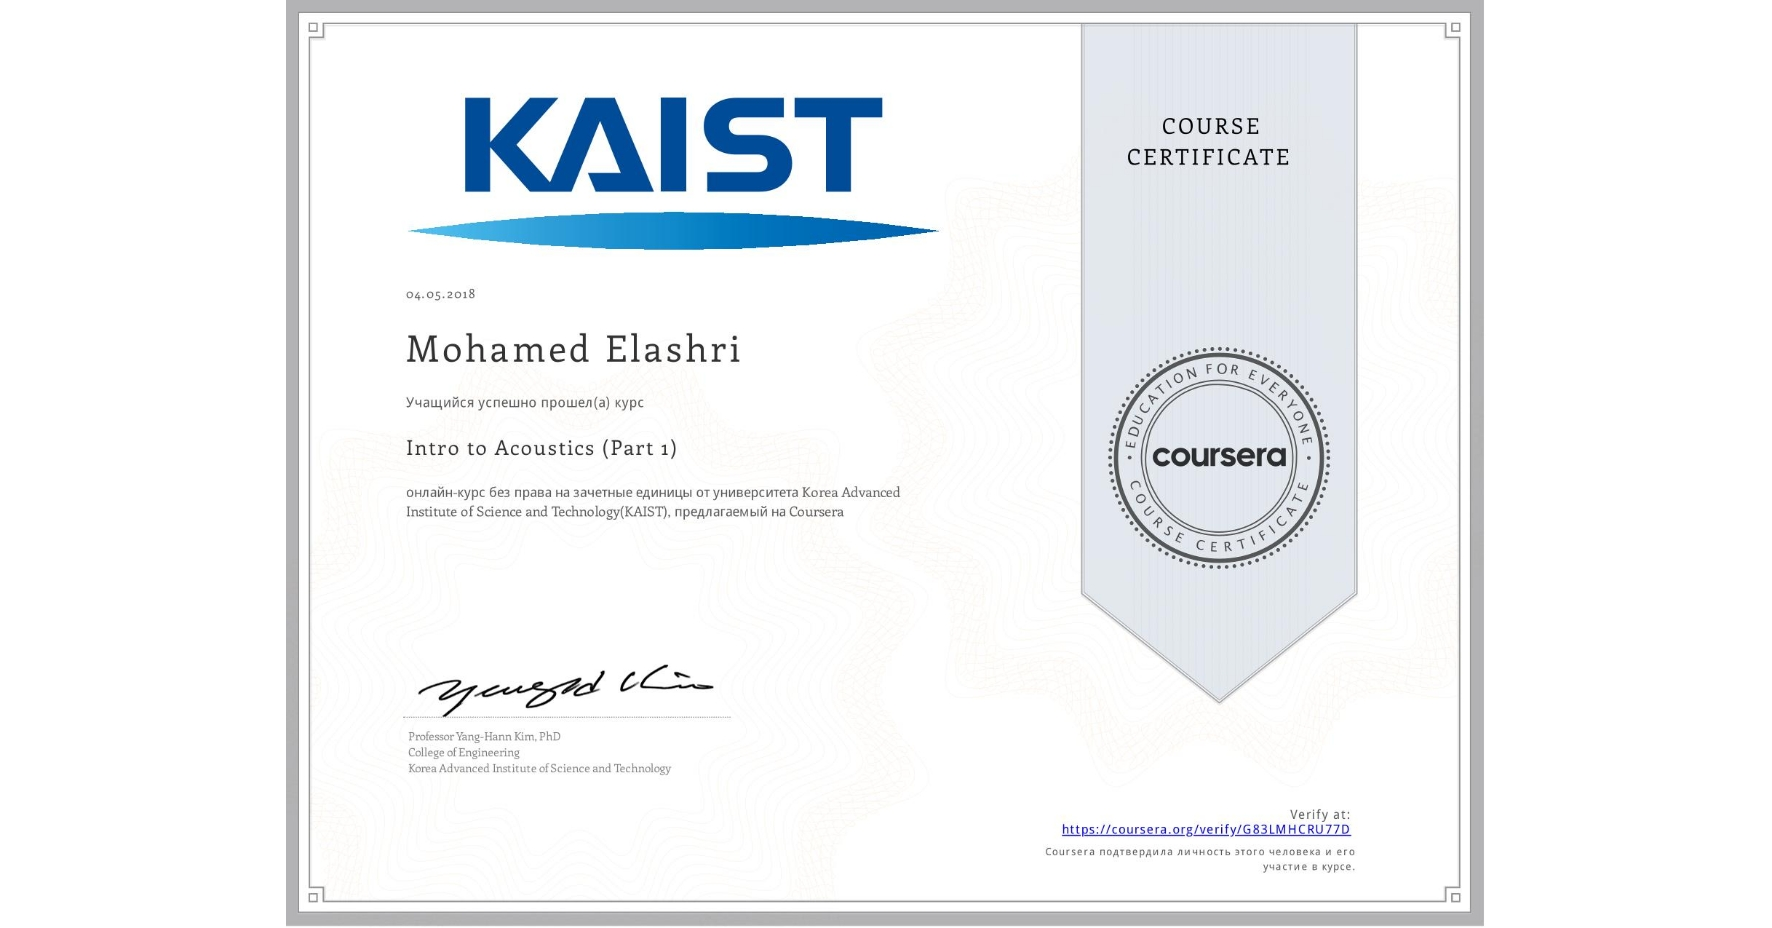 View certificate for Mohamed Elashri, Intro to Acoustics (Part 1), an online non-credit course authorized by Korea Advanced Institute of Science and Technology(KAIST) and offered through Coursera